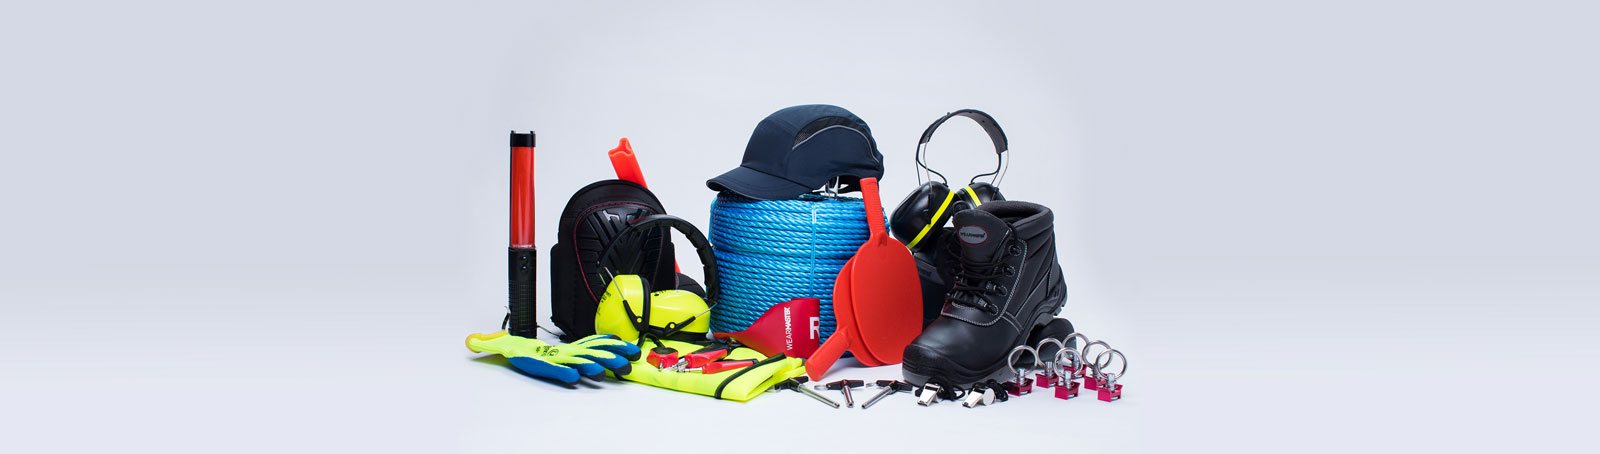 Contego Aviation Aviation Safety Equipment and Workwear